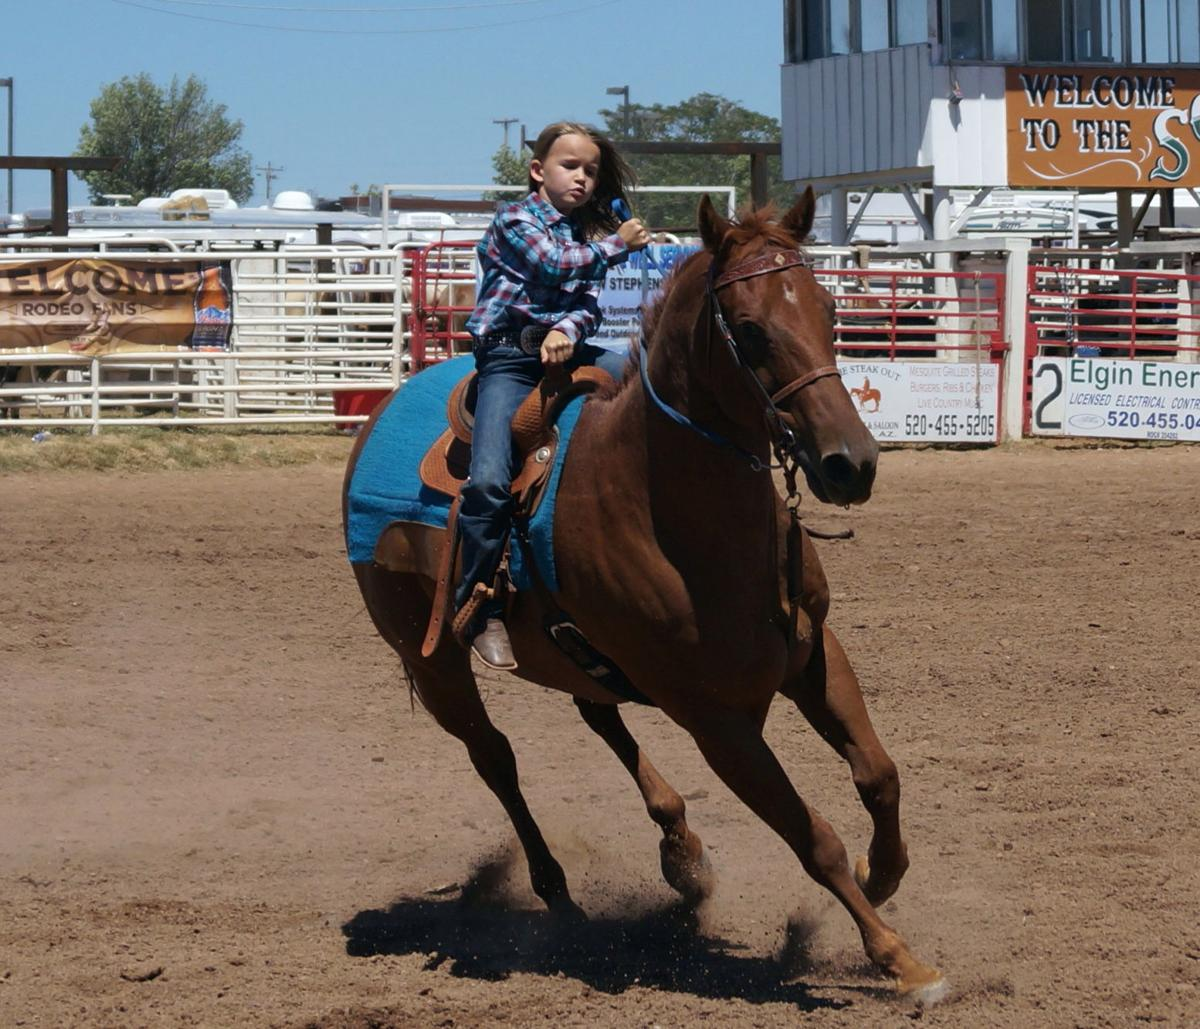 Large Crowds Flock To 99th Sonoita Rodeo News